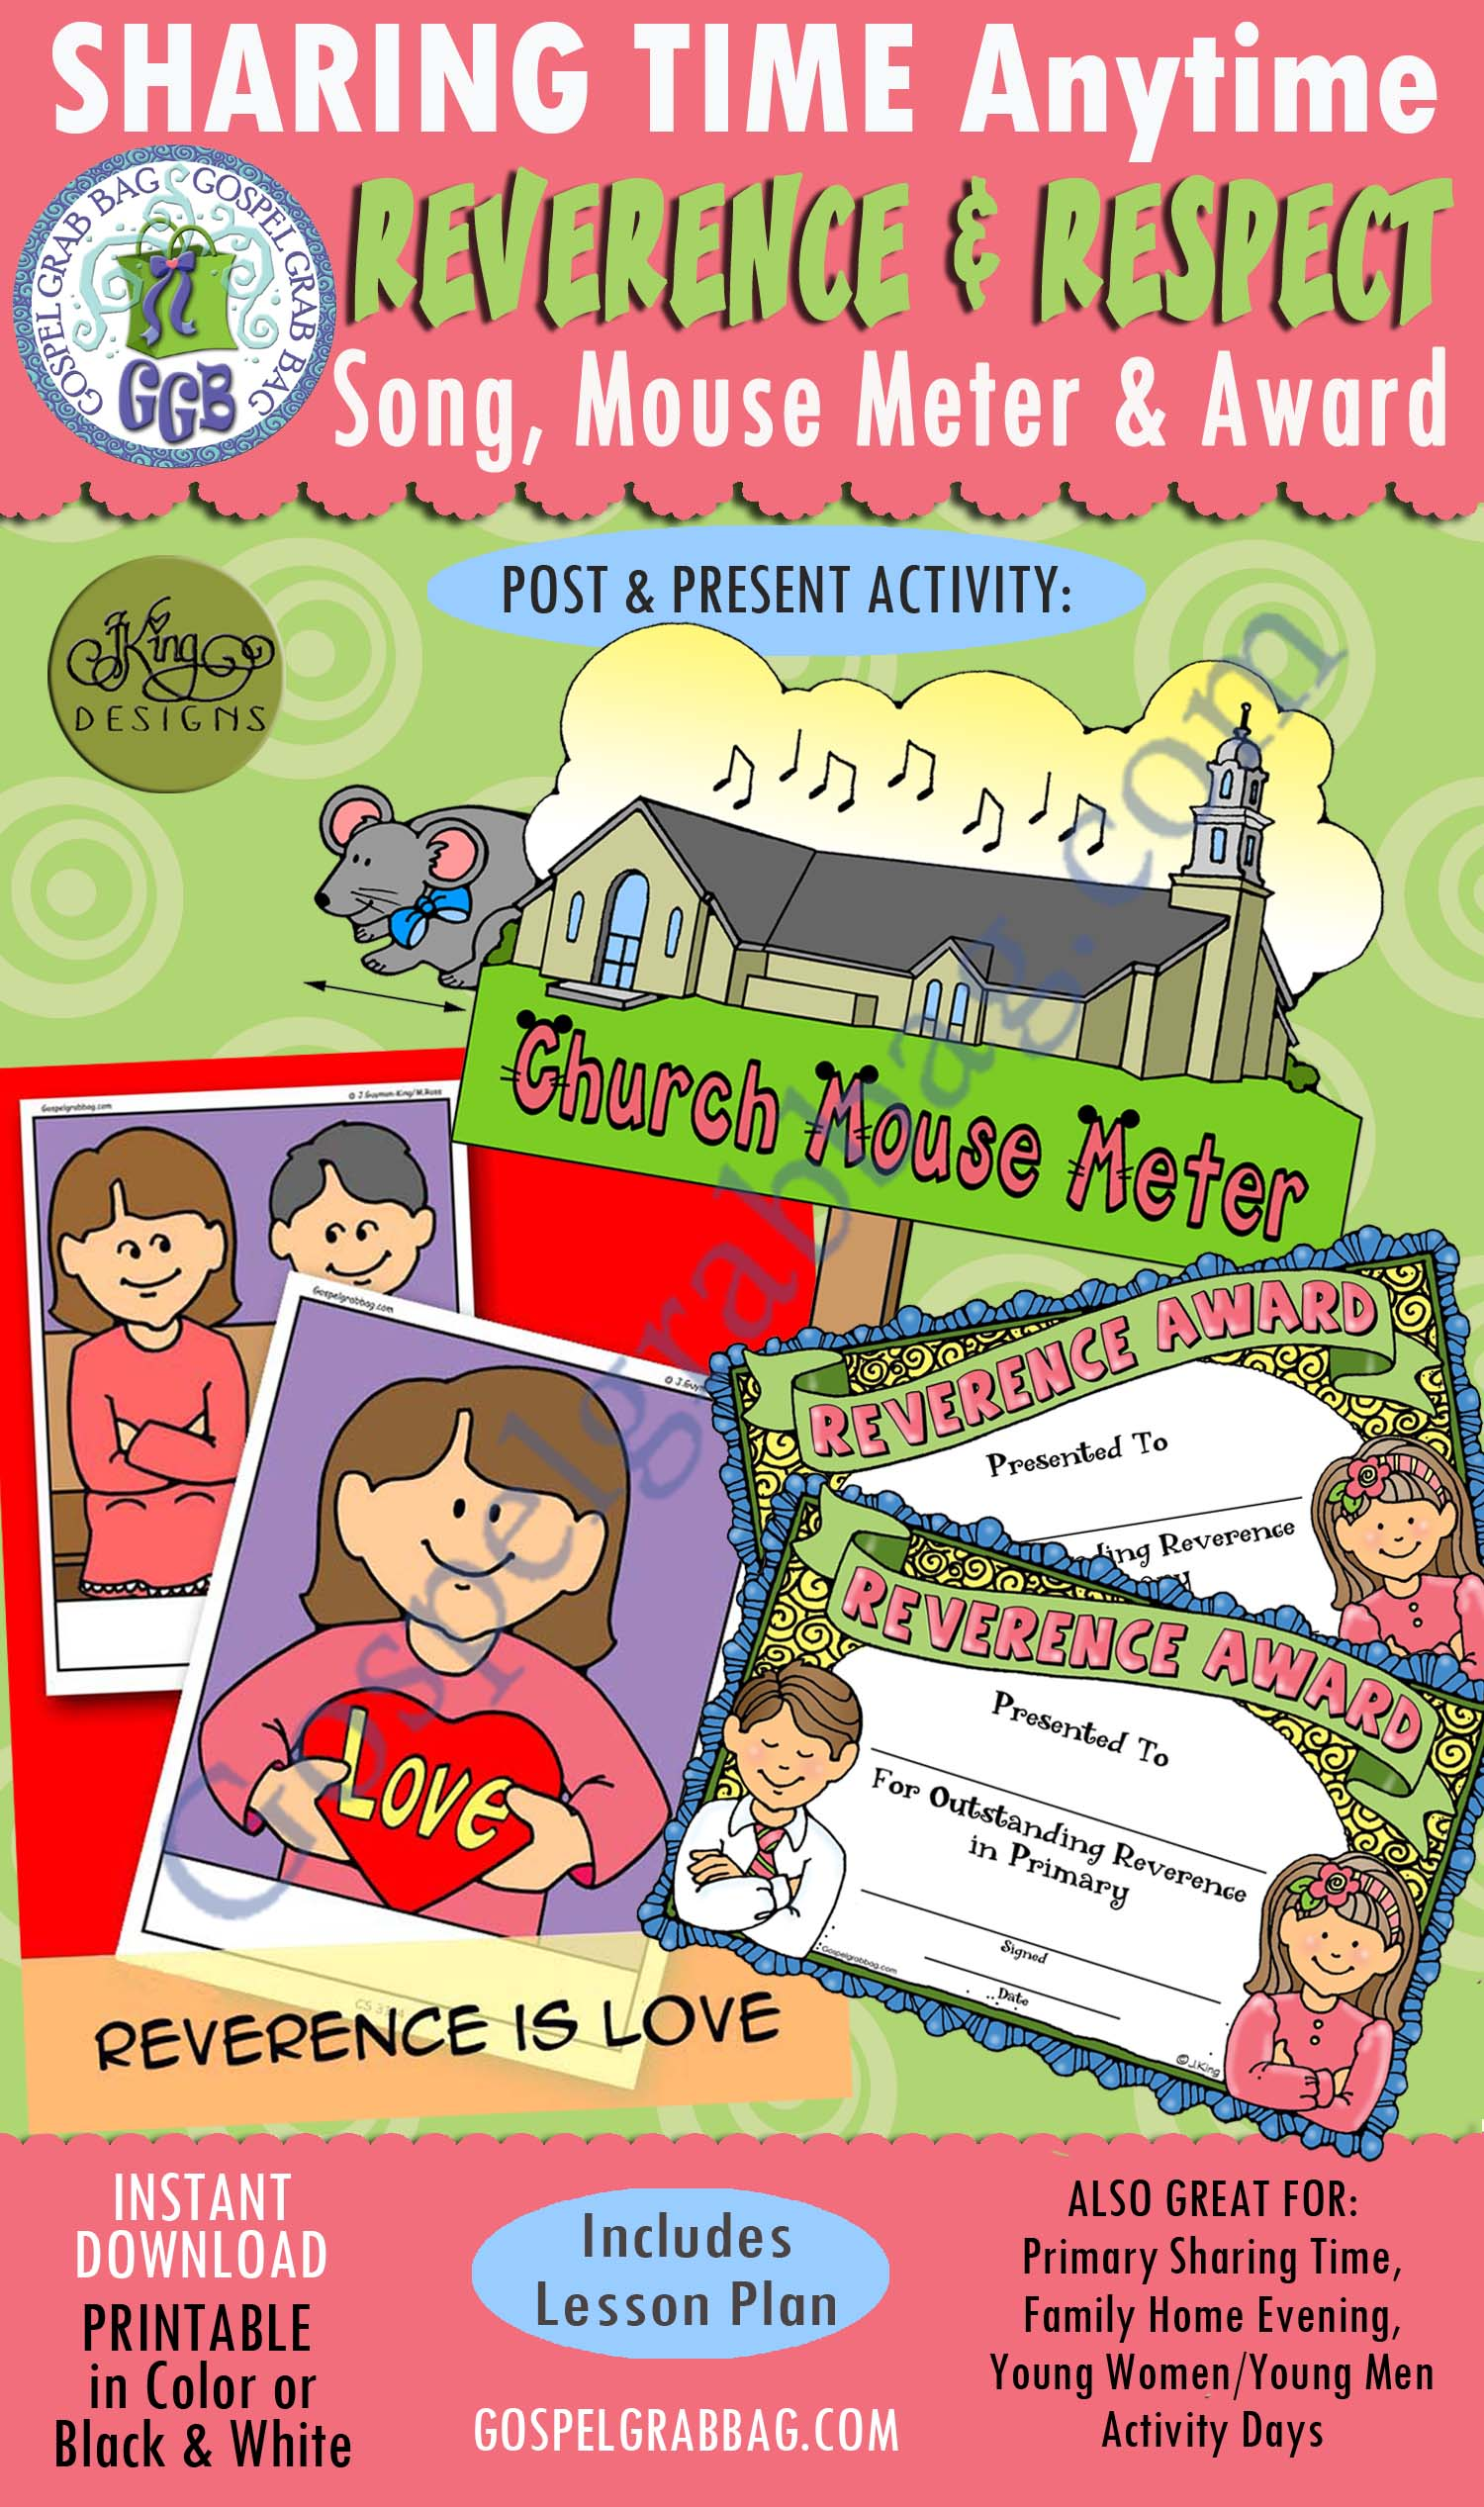 "Reverence and Respect KIT: ""Reverence Is Love"" song visuals, Church Mouse Meter, Reverence Award certificates. Primary Sharing Time, Family Home Evening, GospelGrabBag.com"